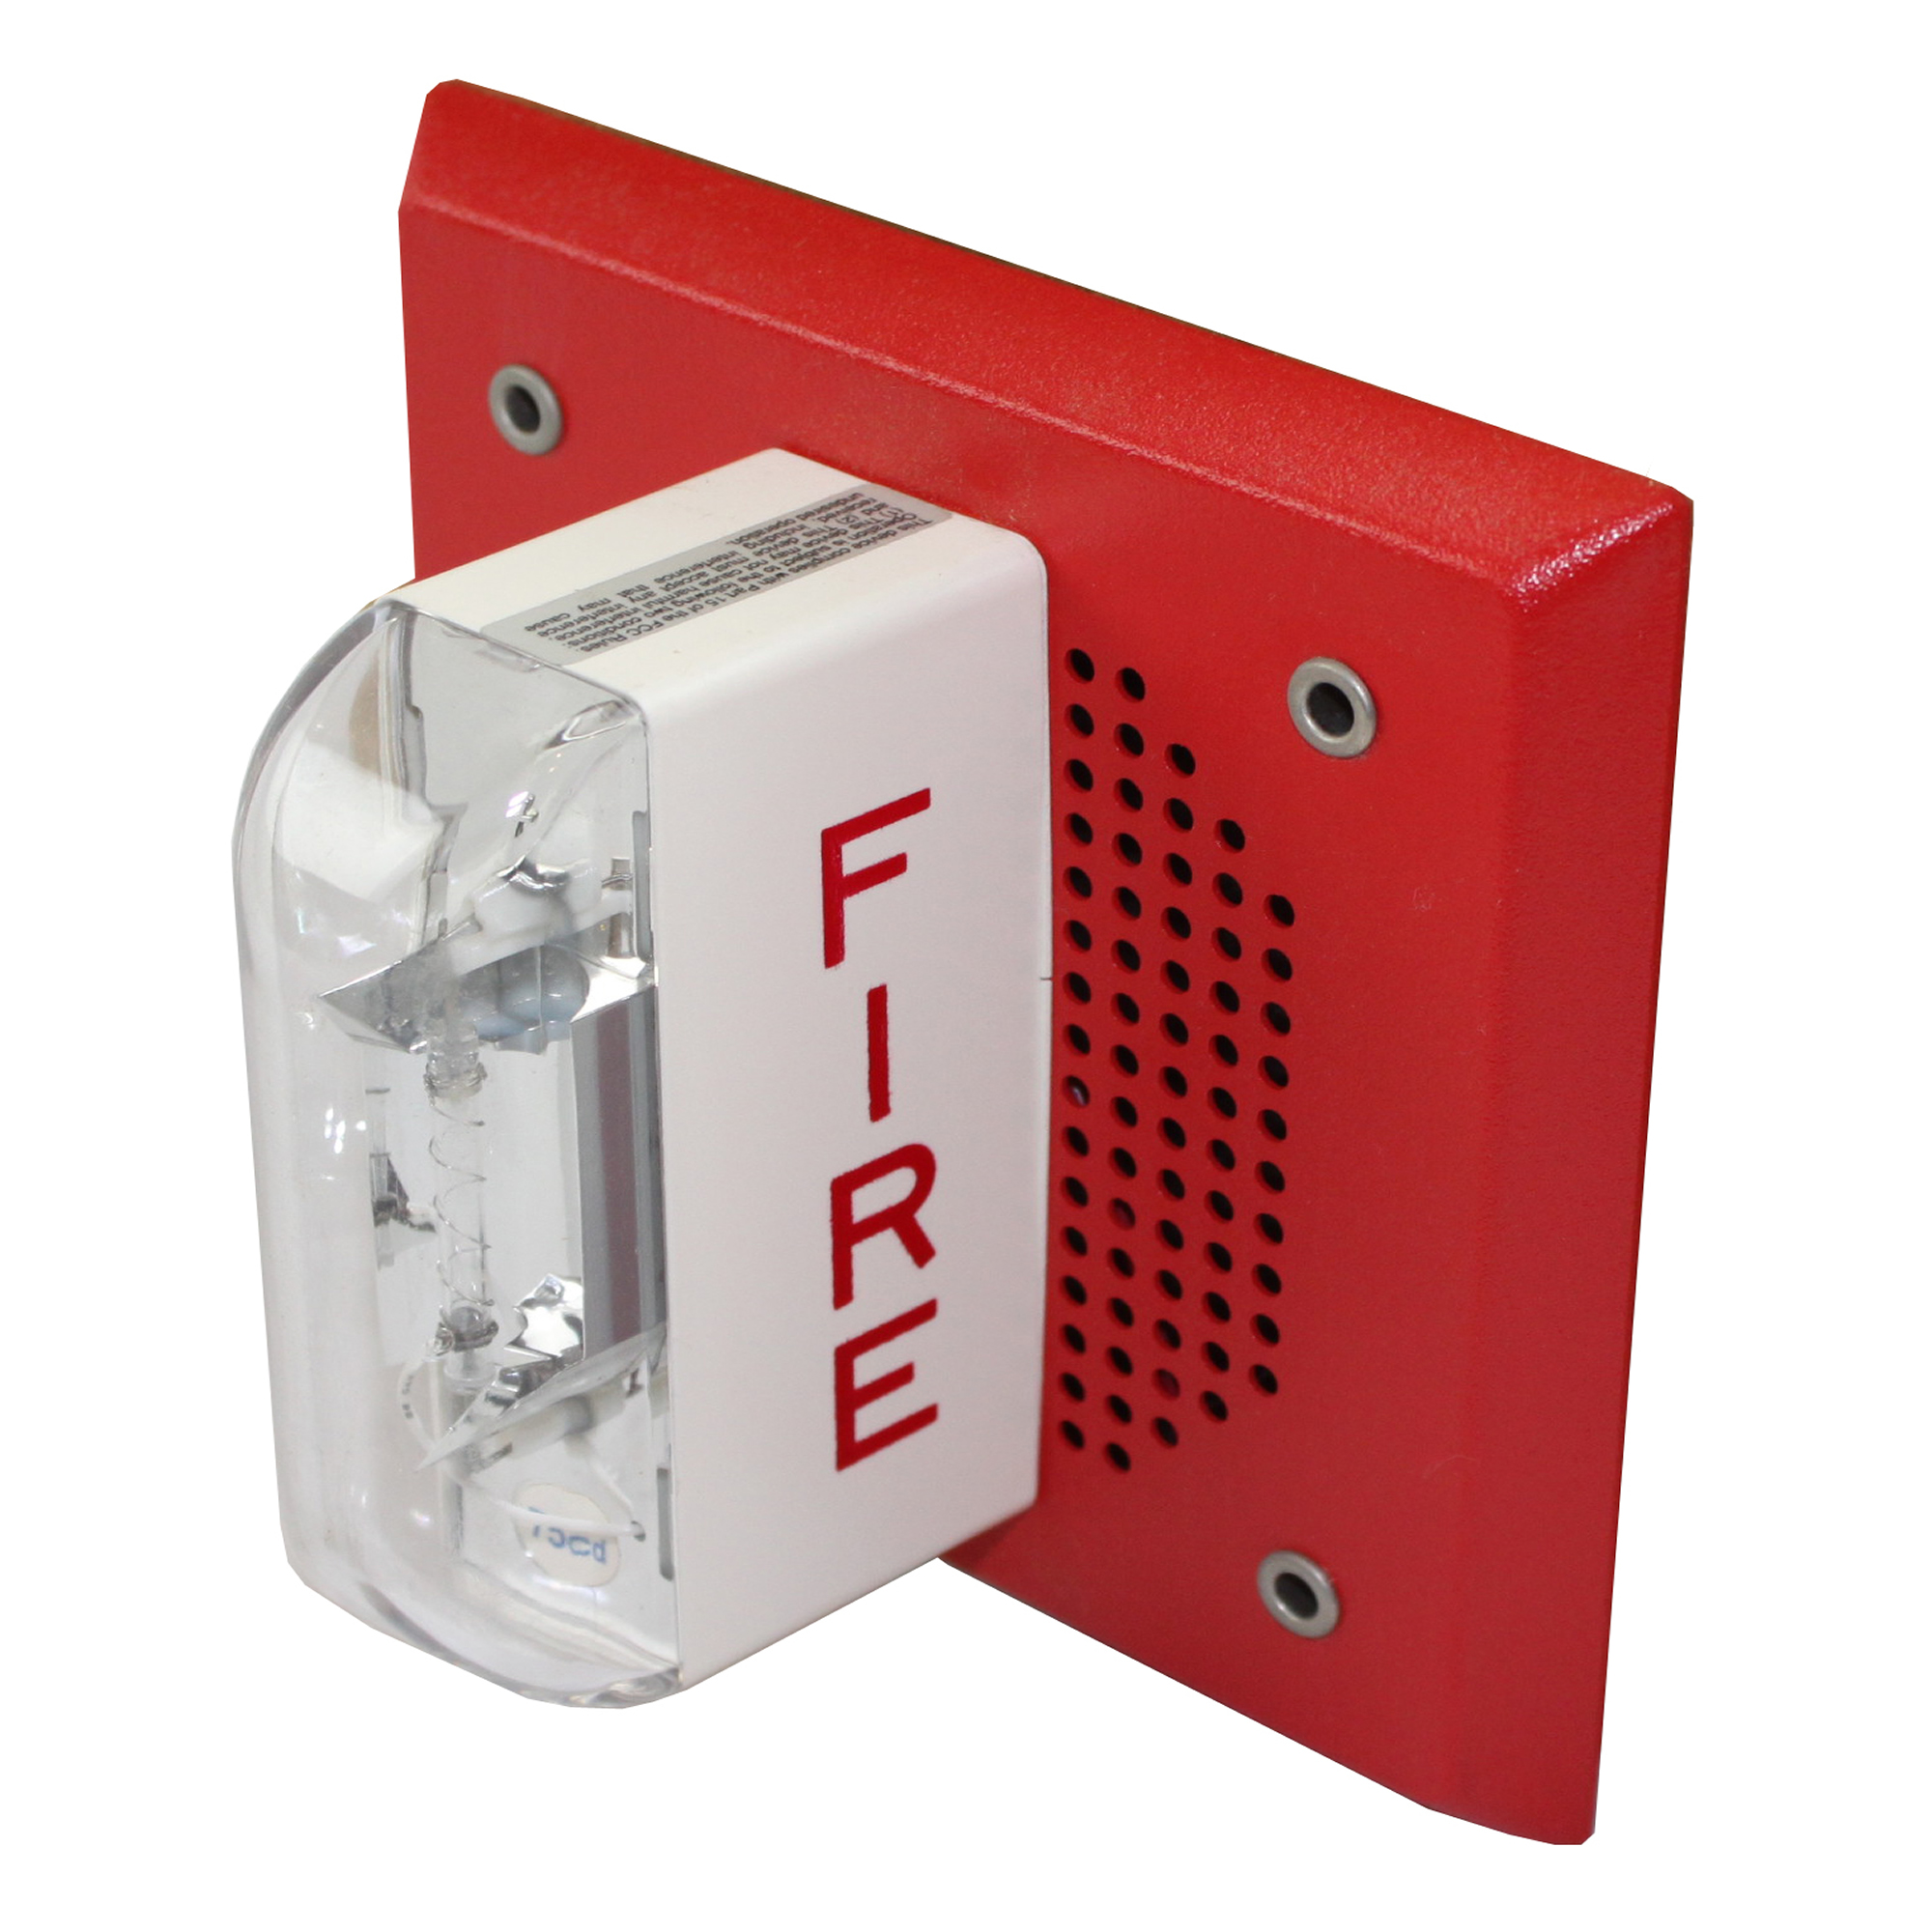 56q12h in addition Electrical Drawing together with Simplex 4010es moreover Hi Res Fire Alarm Strobe Light Self Recording Hd Surveillance Camera as well 60w Car Truck Electric Air Horn Siren Speaker 5 Sound Tone Super Loud 300db Yp I1343985. on fire alarm horn strobe lights